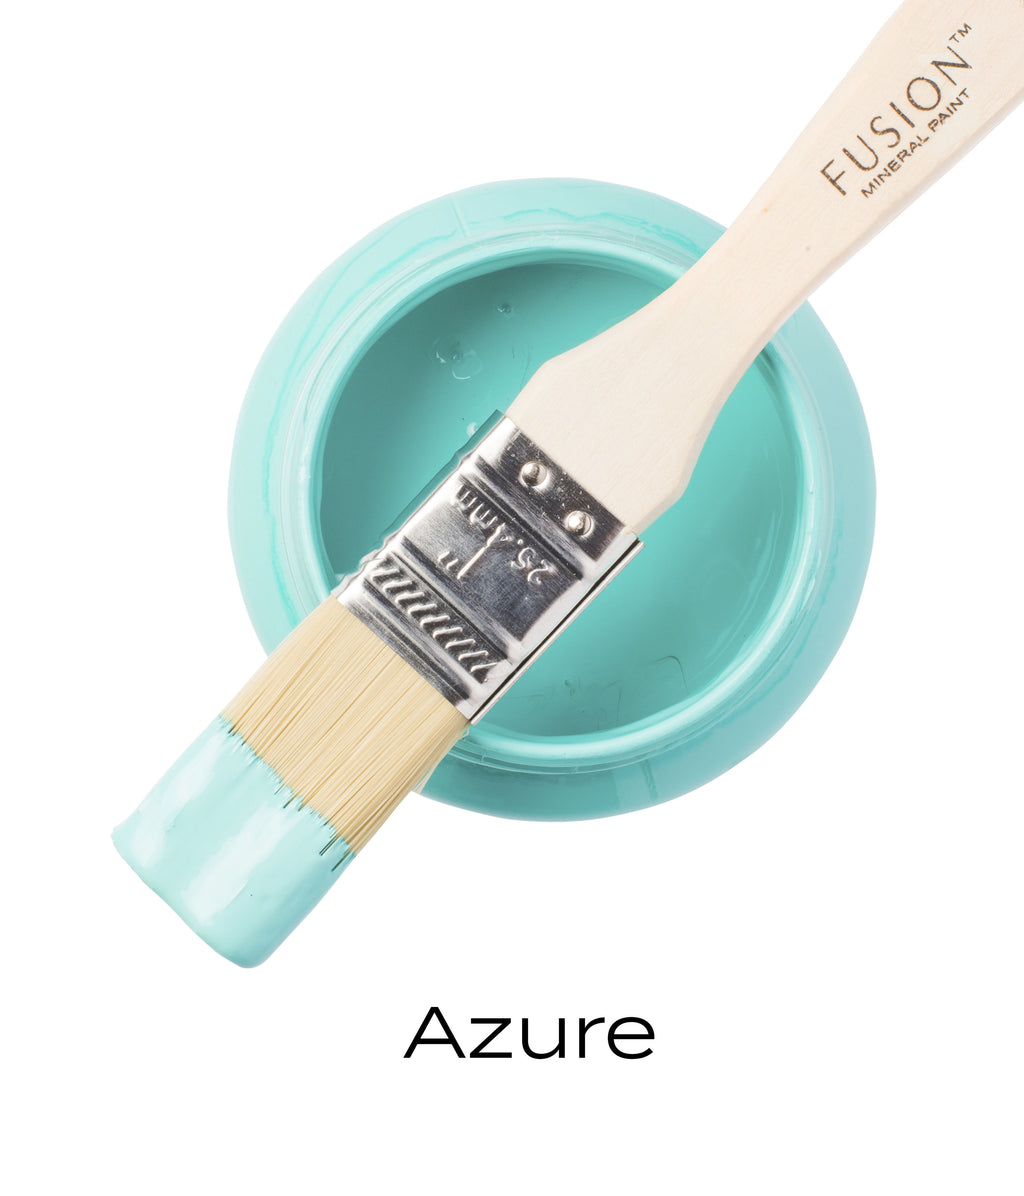 Azure Fusion Mineral Paint Near Me